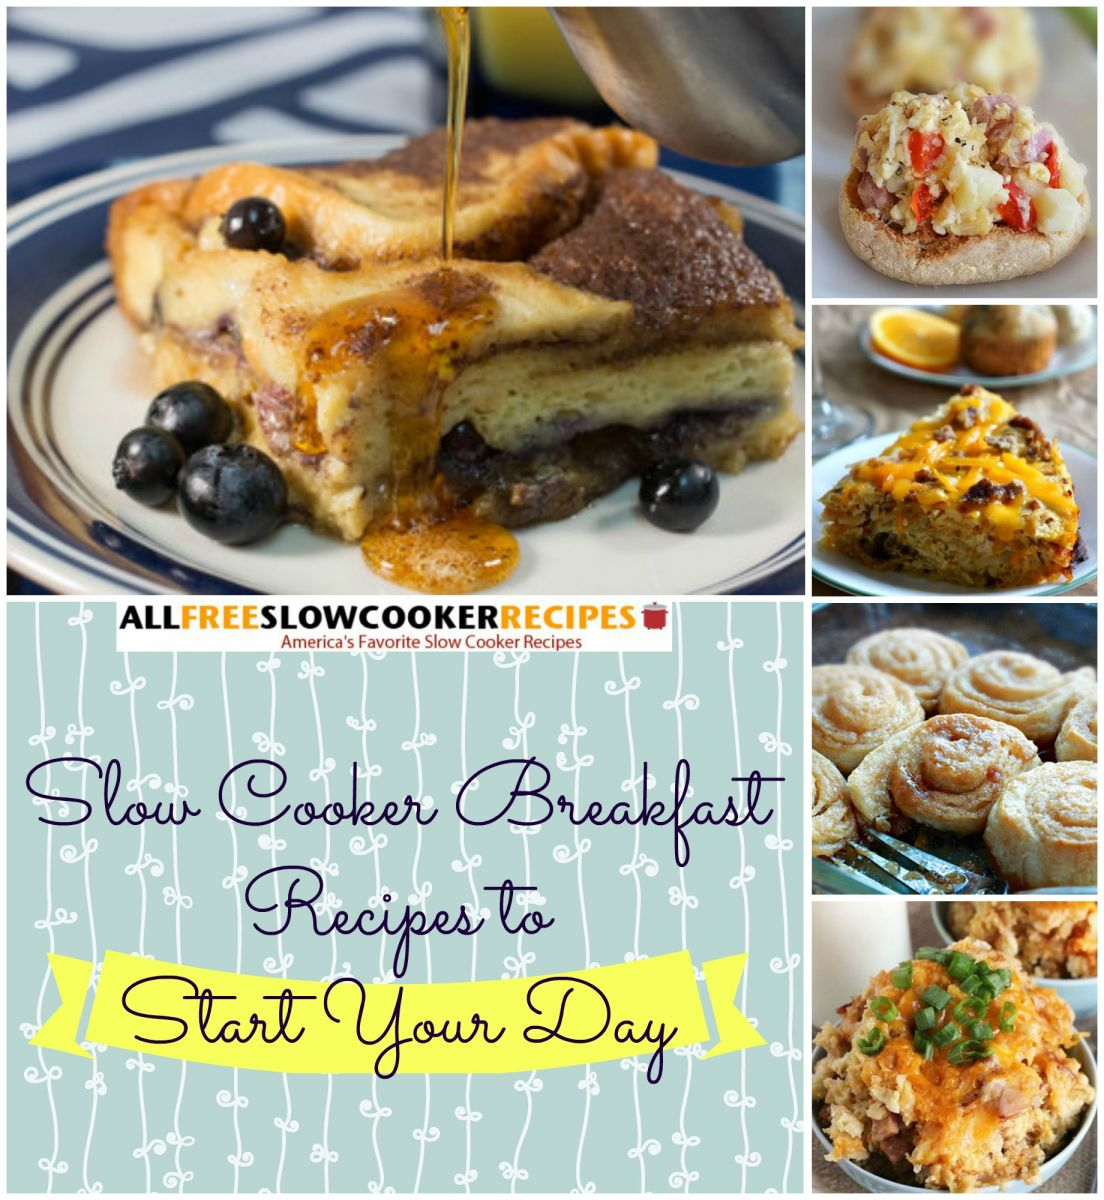 Slow Cooker Breakfast Recipes To Start Your Day